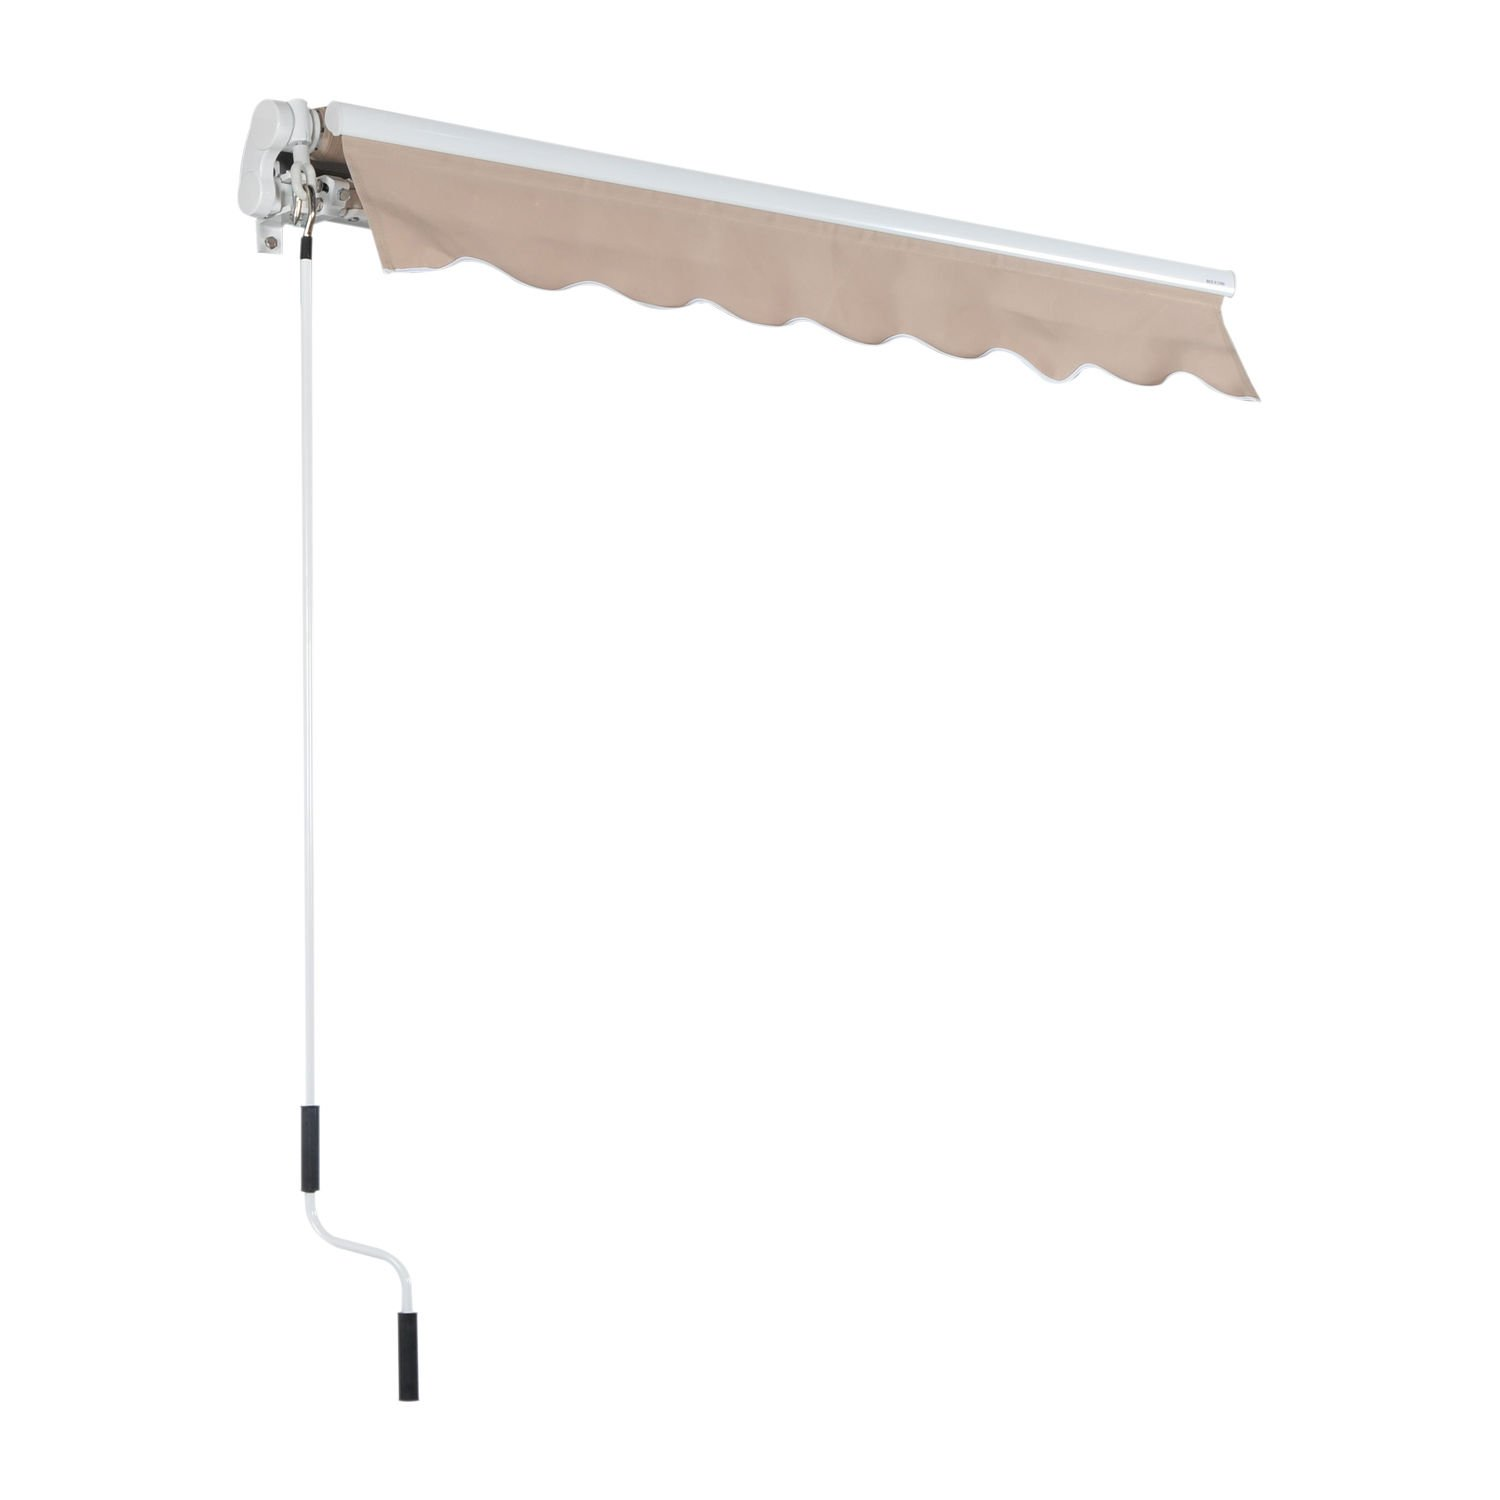 Outsunny 8' x 7' Patio Manual Retractable Sun Shade Awning - Cream by Outsunny (Image #3)